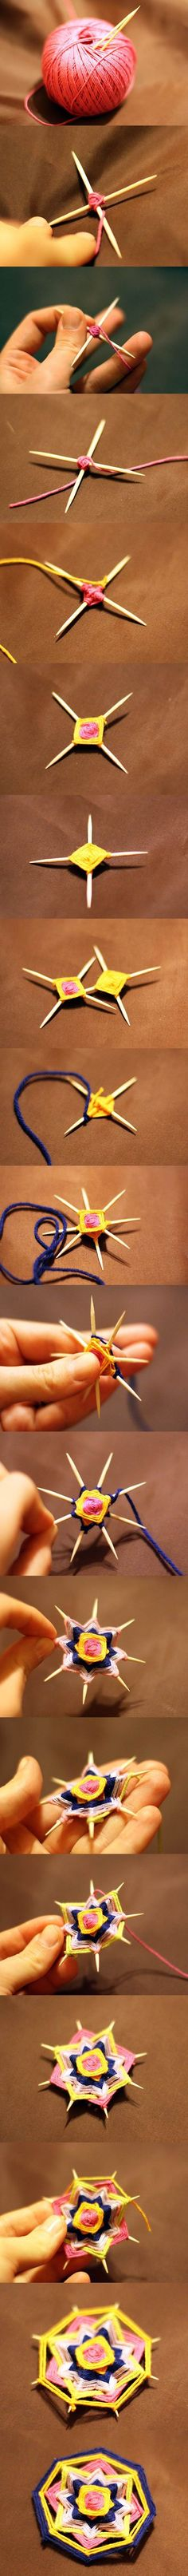 DIY Weave a Mandala Brooch with Toothpicks #craft #Mandala #brooch: